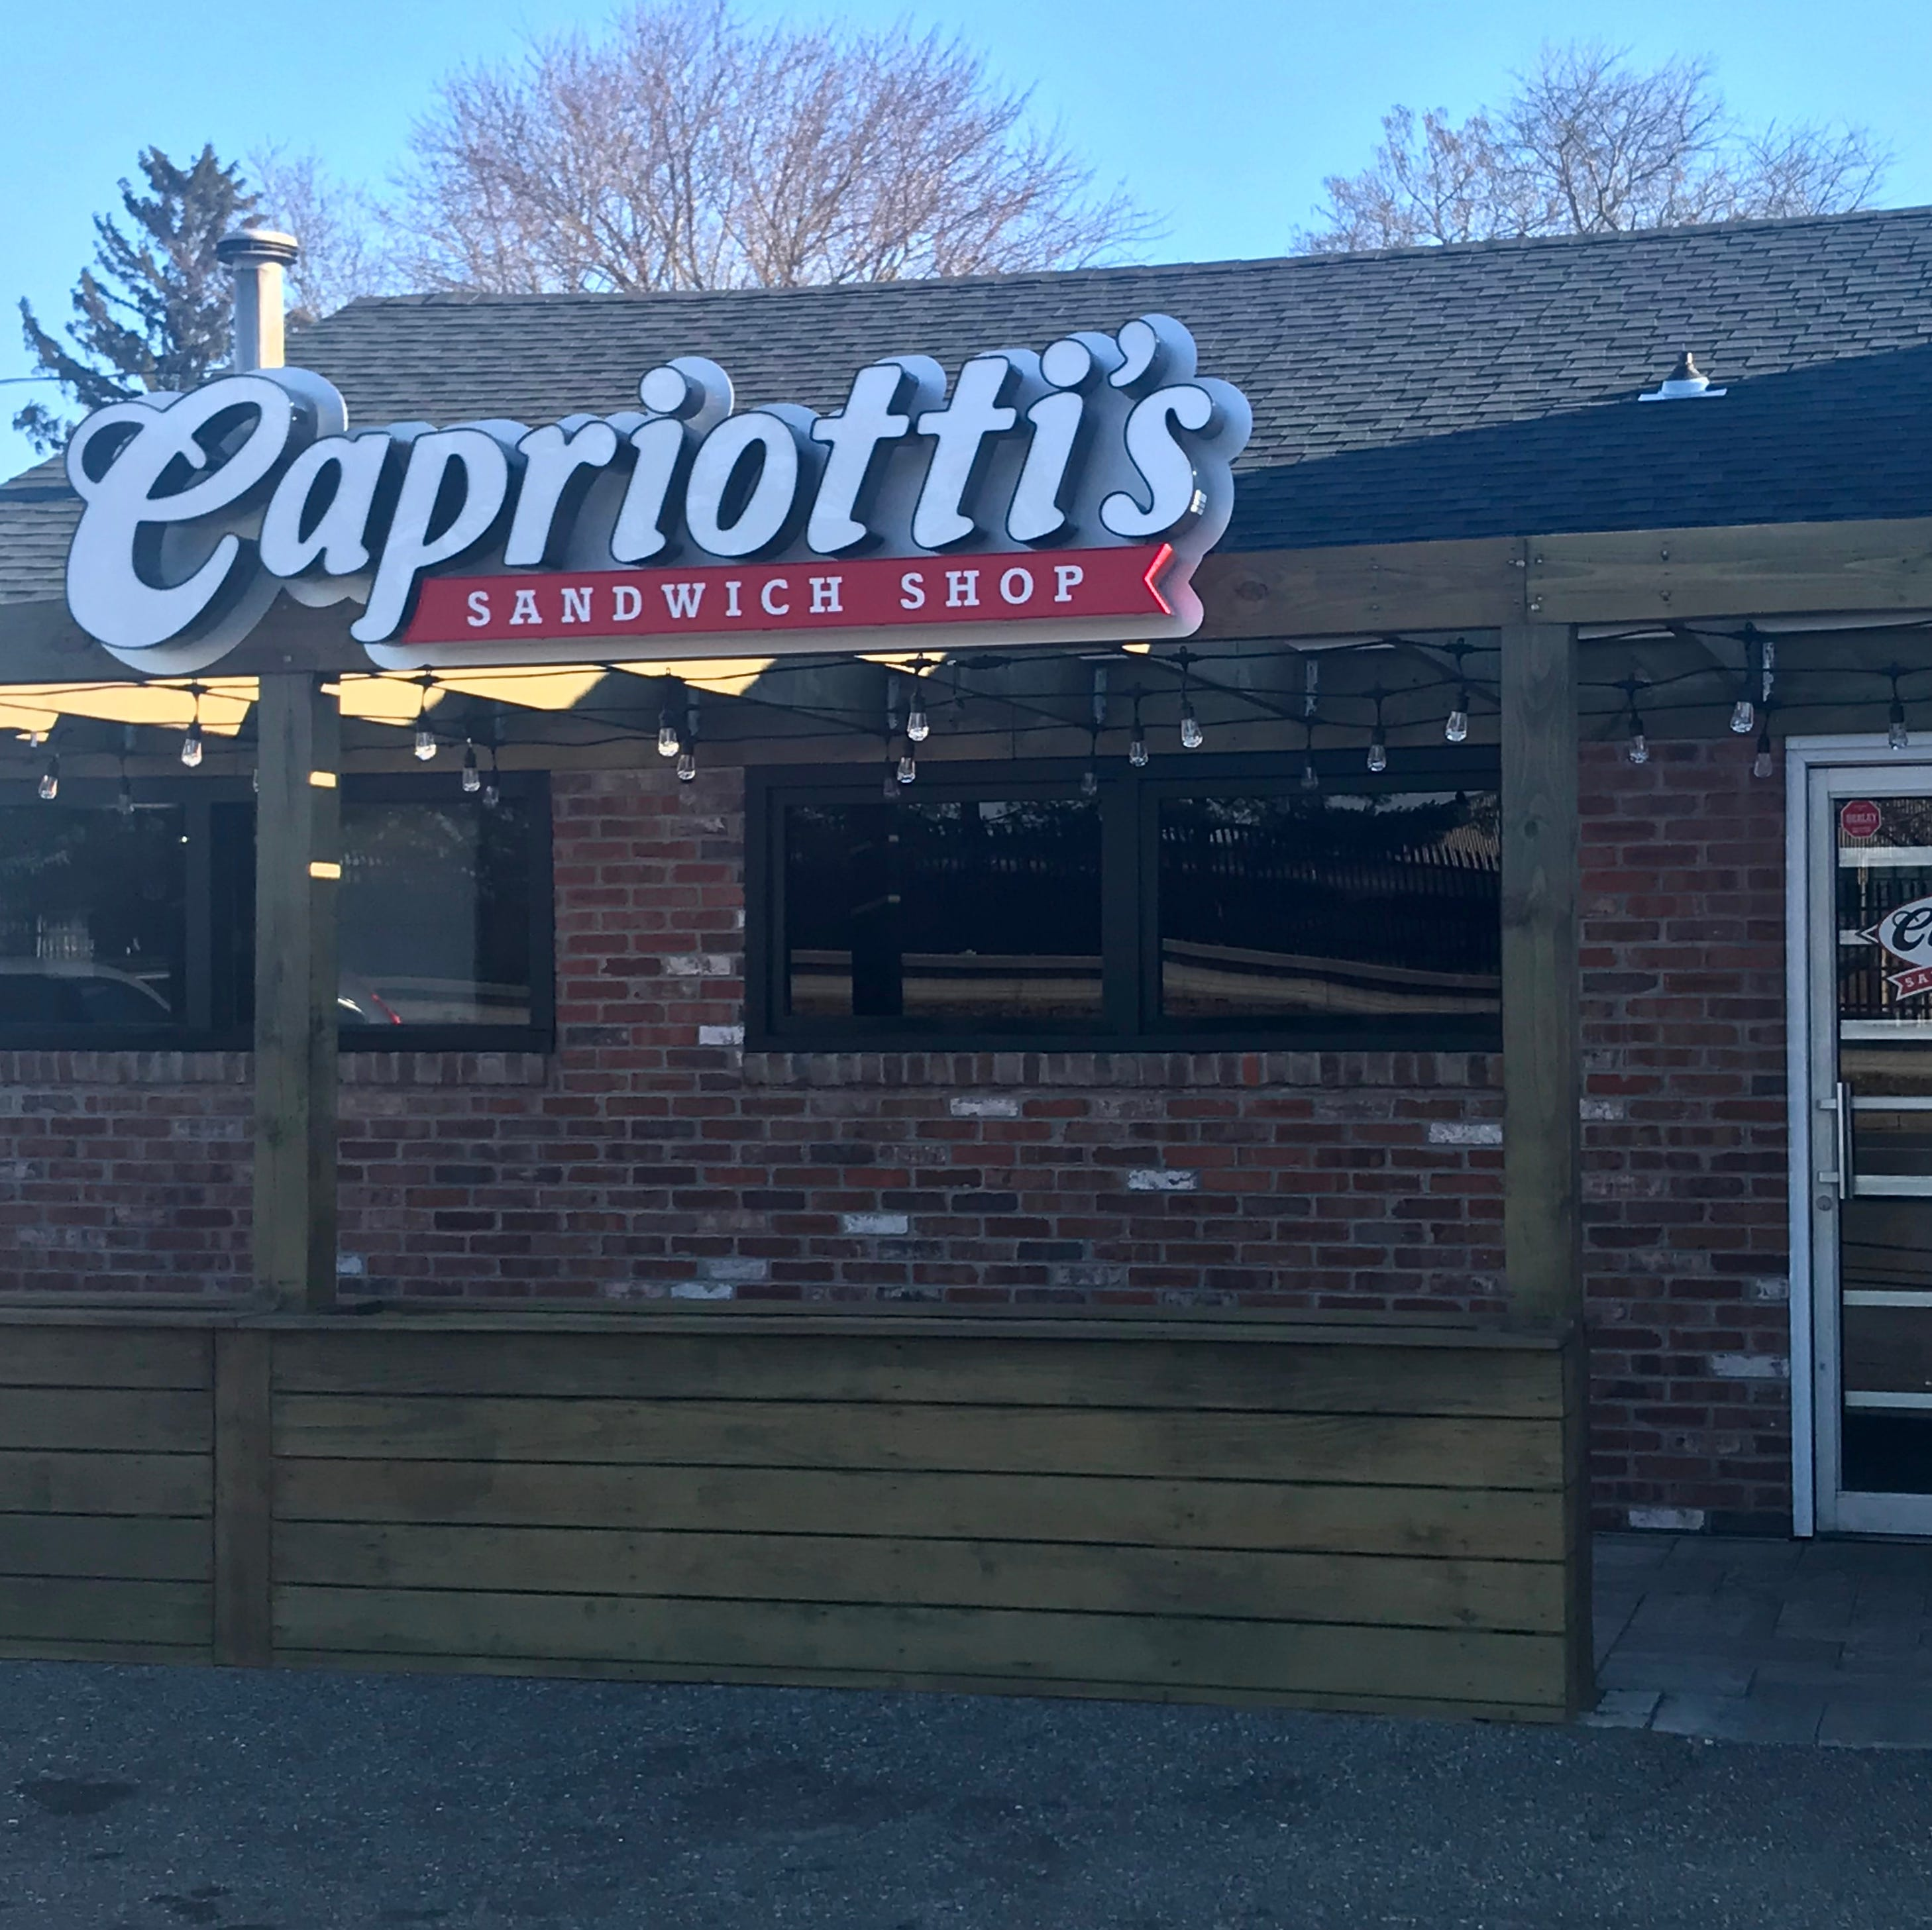 Capriotti's New Castle real estate for sale for $995,113